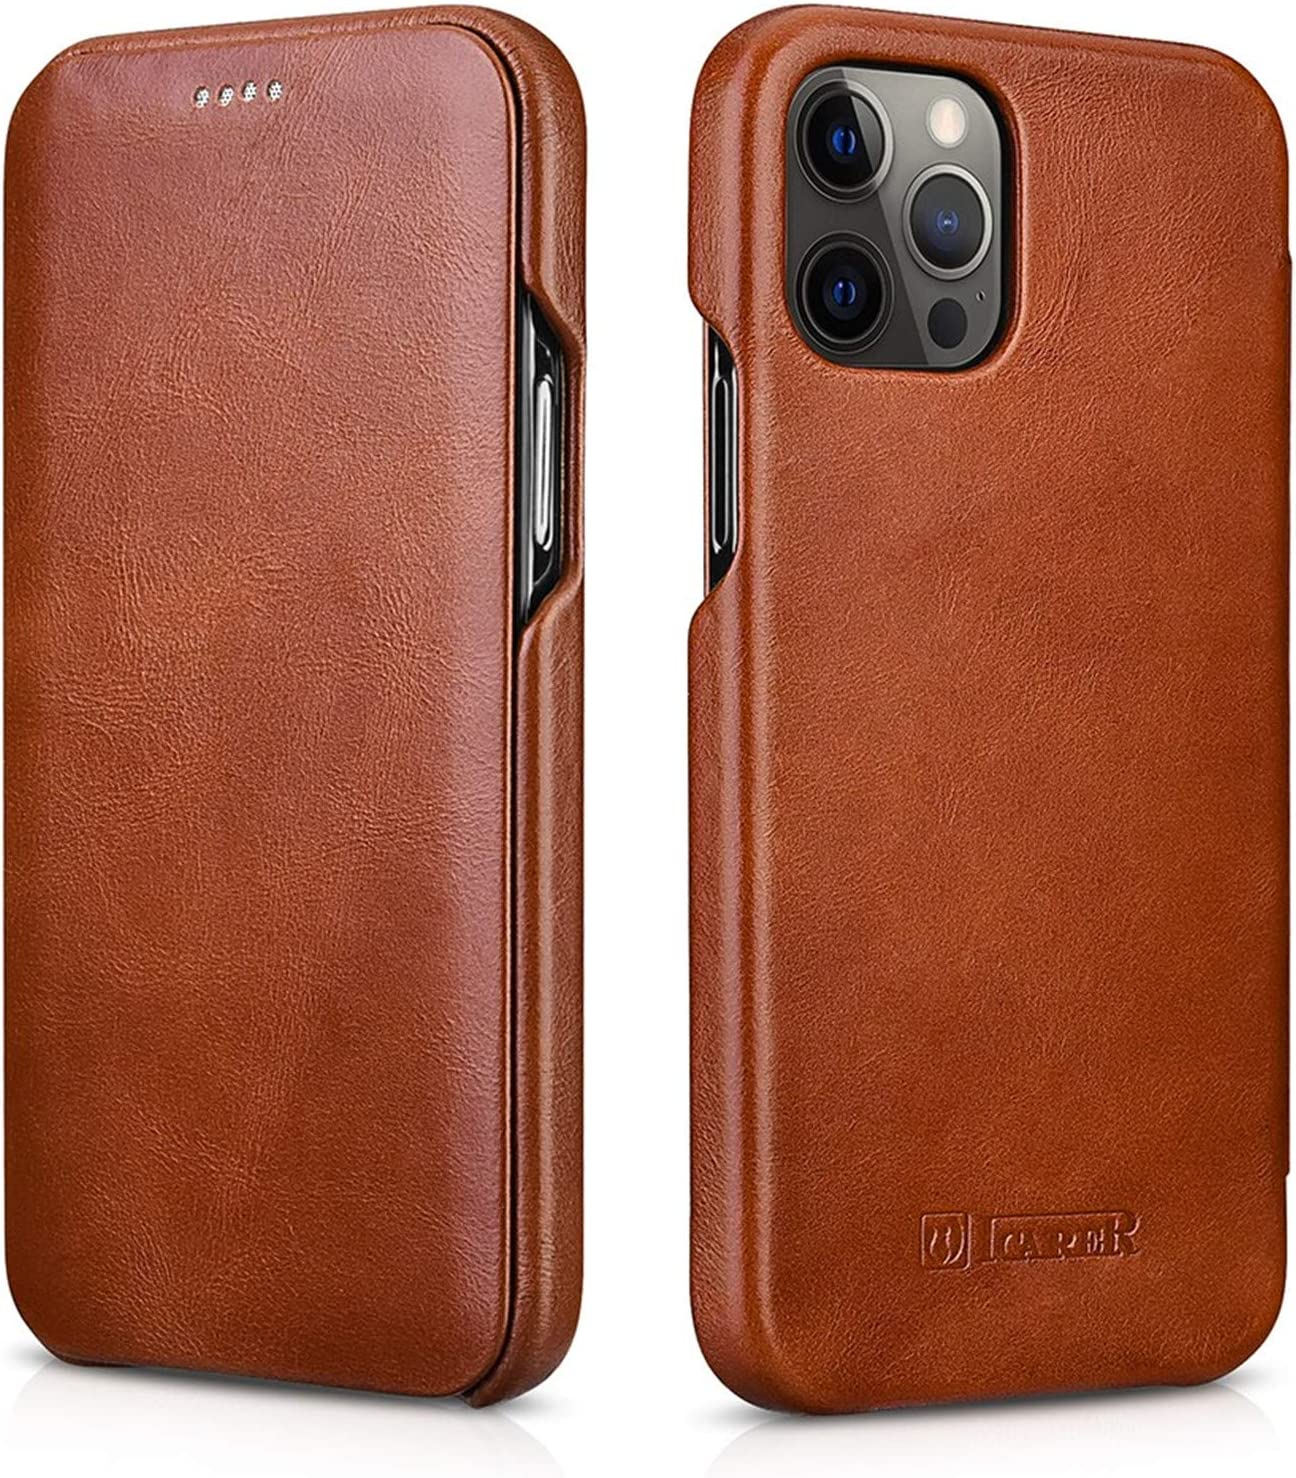 ICARER for iPhone Excellence 12 Pro Curve Genuine Case Selling Leather